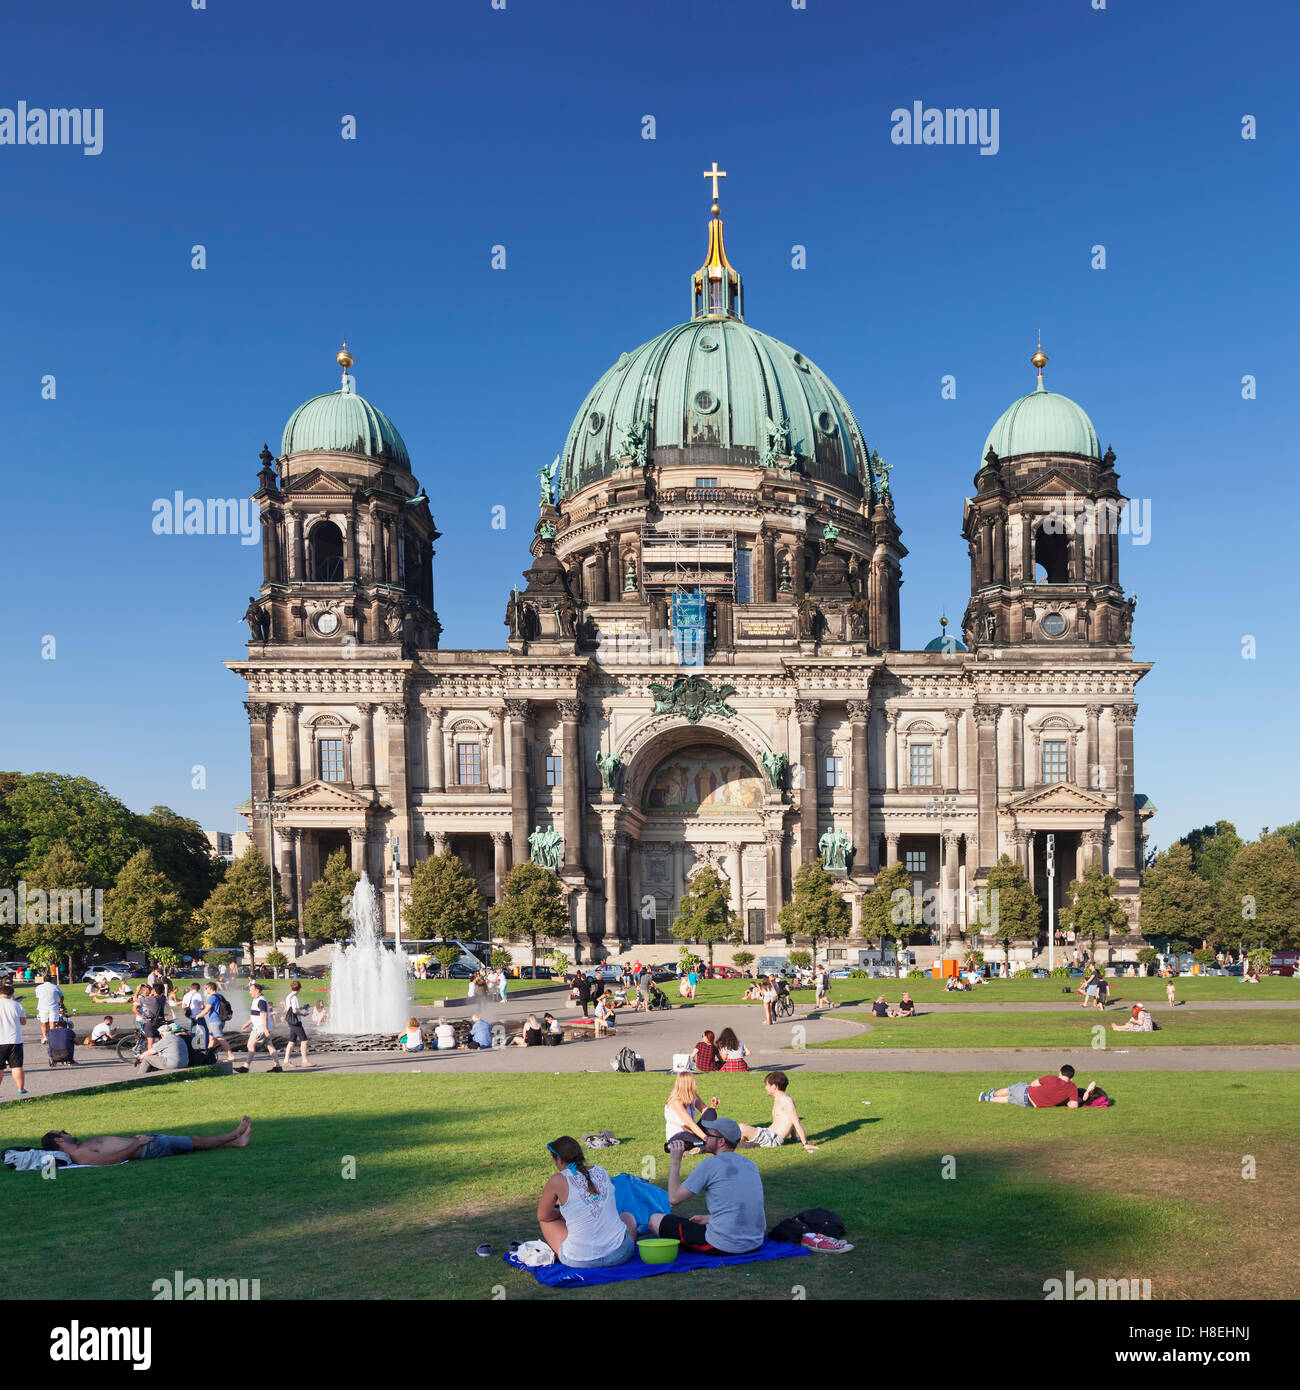 Berliner Dom (Berlin Cathedral), Museum Island, UNESCO World Heritage Site, Mitte, Berlin, Germany, Europe - Stock Image